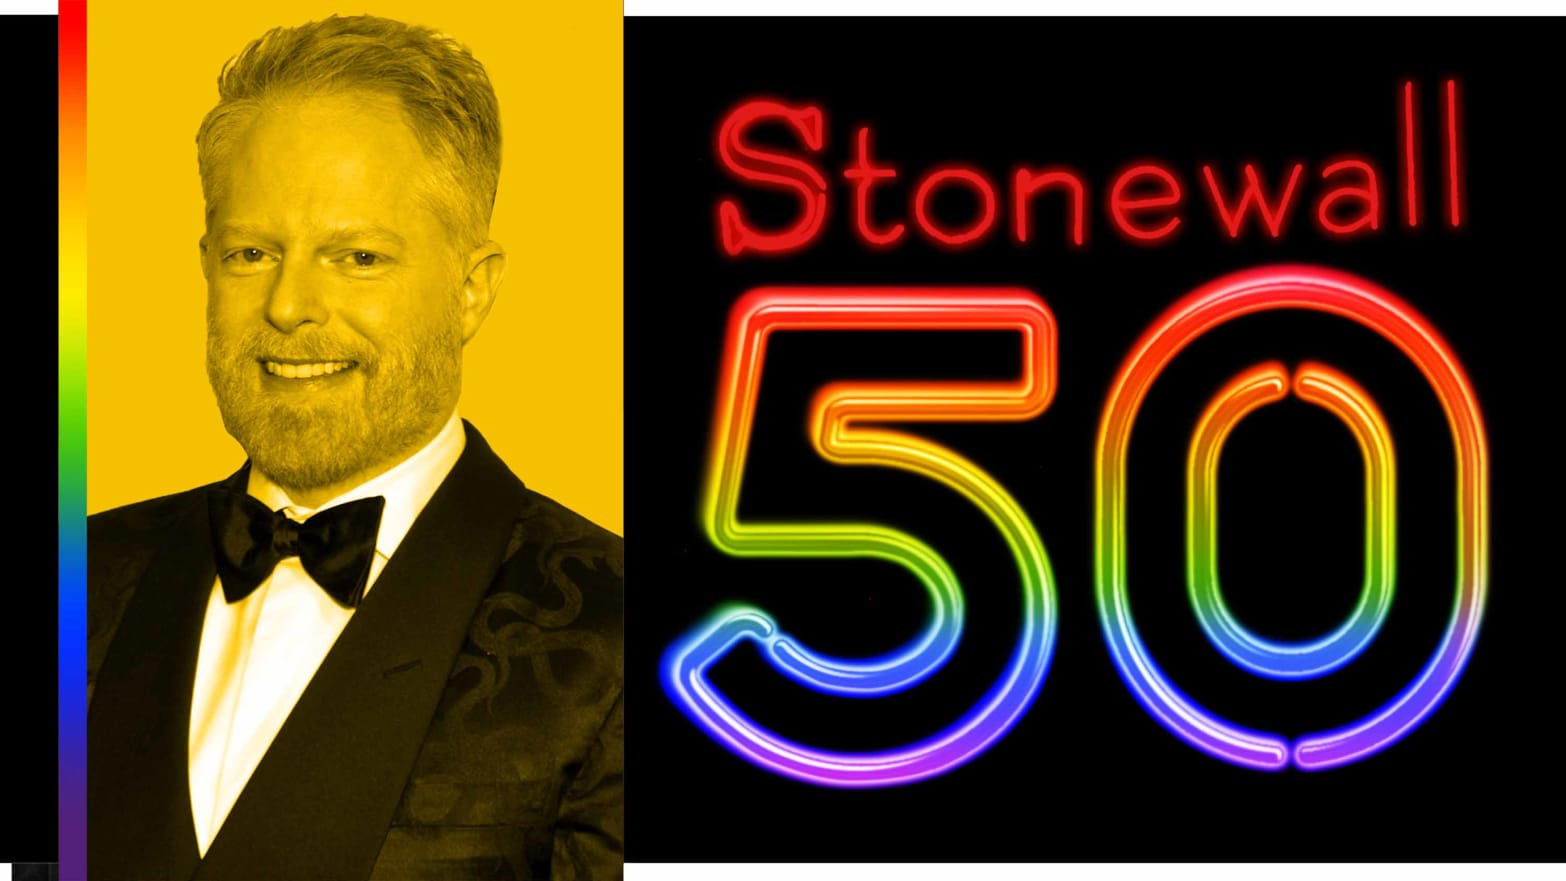 Jesse Tyler Ferguson on Stonewall 50: 'There Are Still So Many Threats Against the LGBTQ Community'